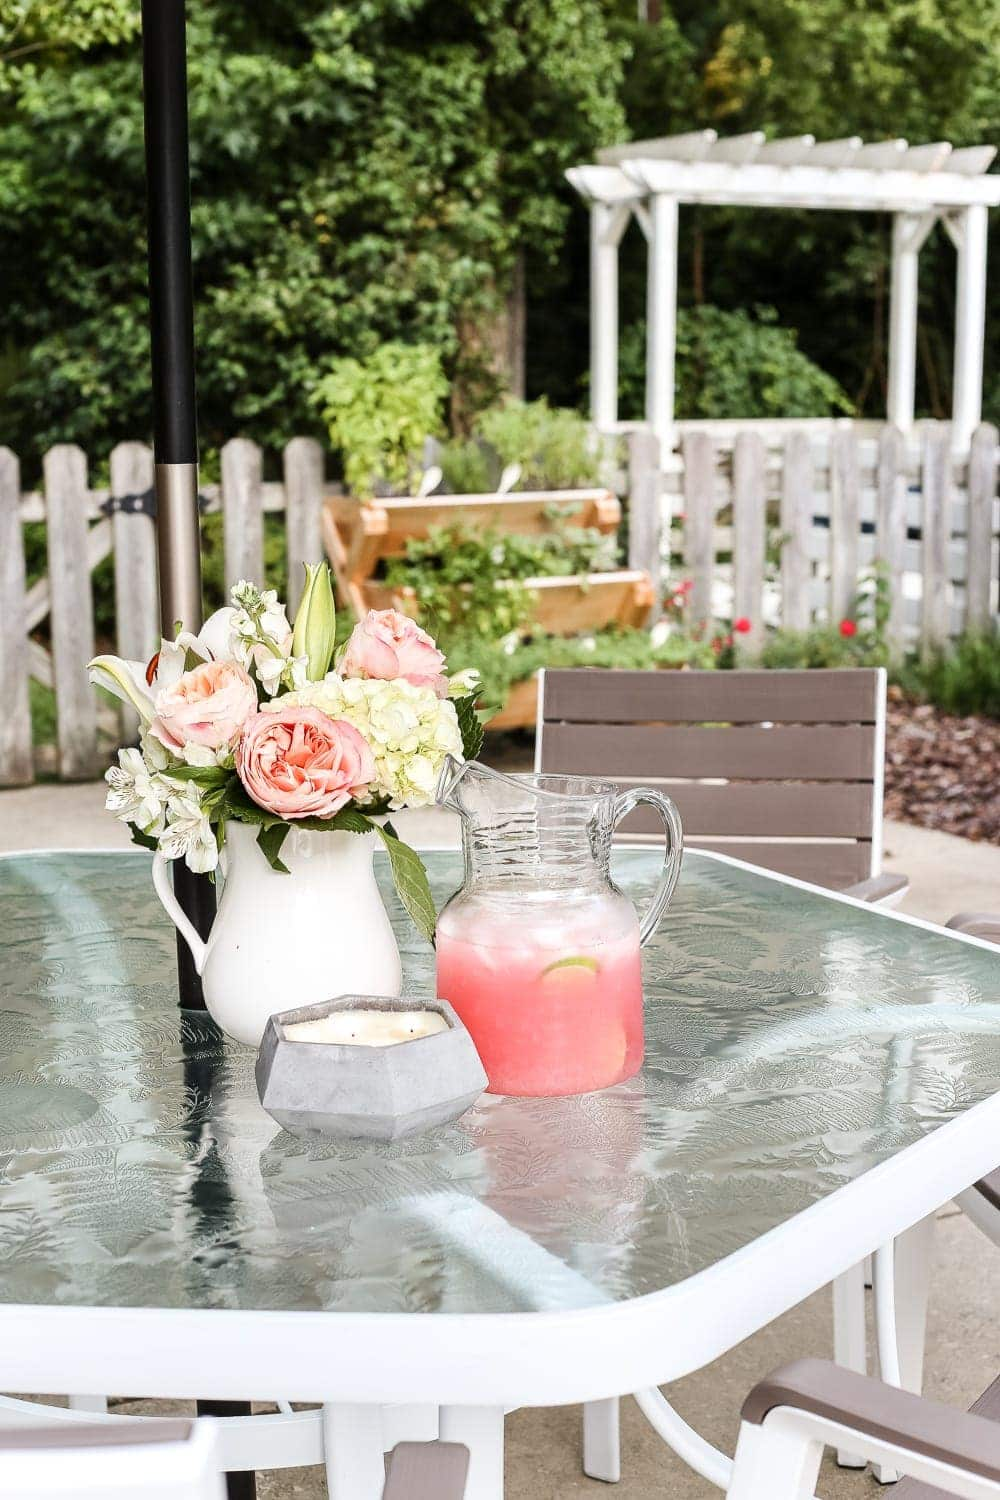 How to Revive a Glass Patio Table | blesserhouse.com - A tutorial explaining how to clean, paint, and revive a glass patio table to make it look brand new in a few quick steps.